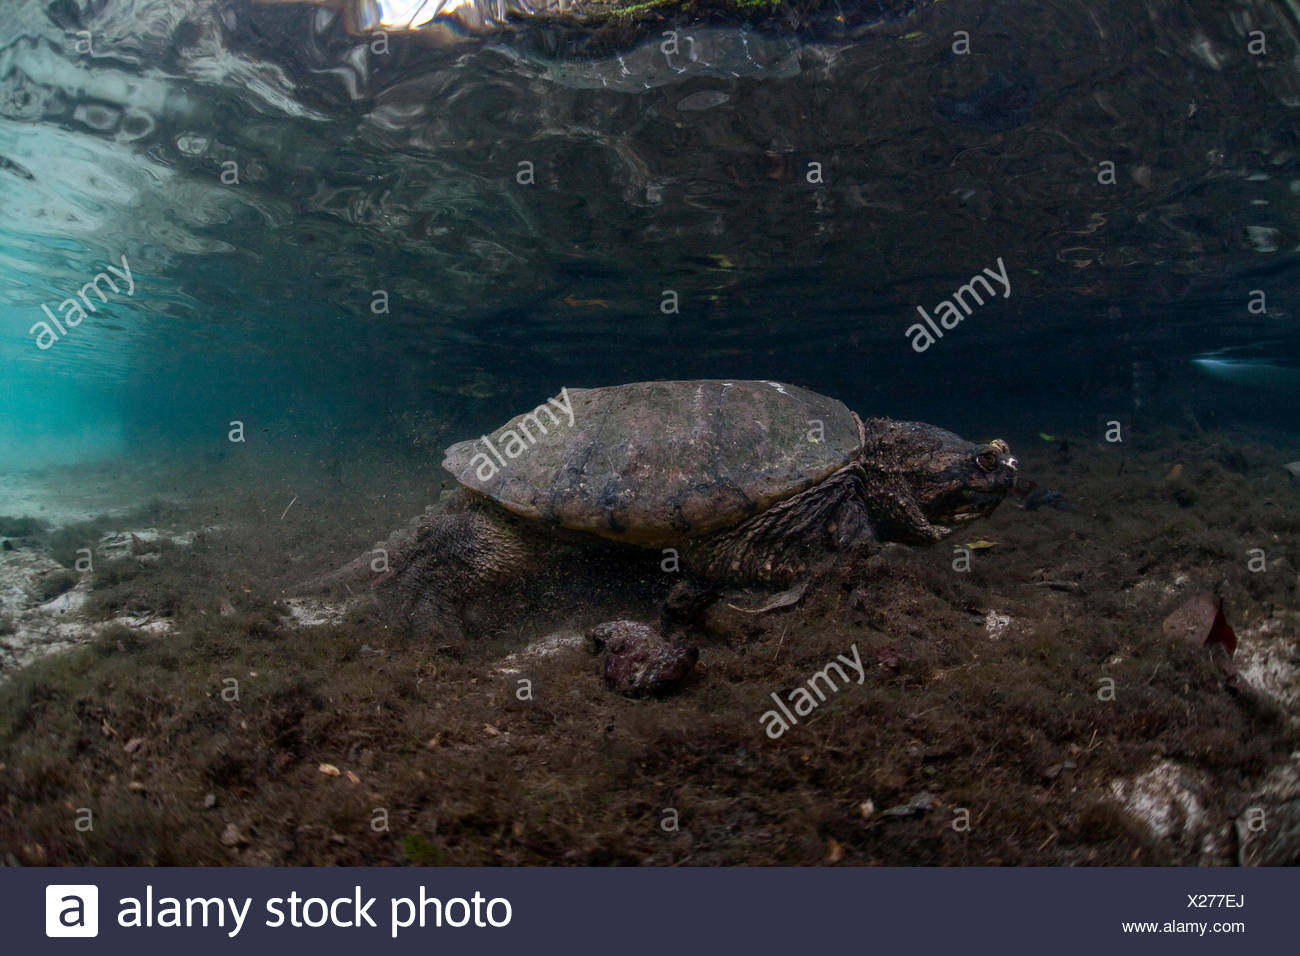 Common Snapping Turtle (Chelydra serpentina), Crystal River, Florida, United States - Stock Image